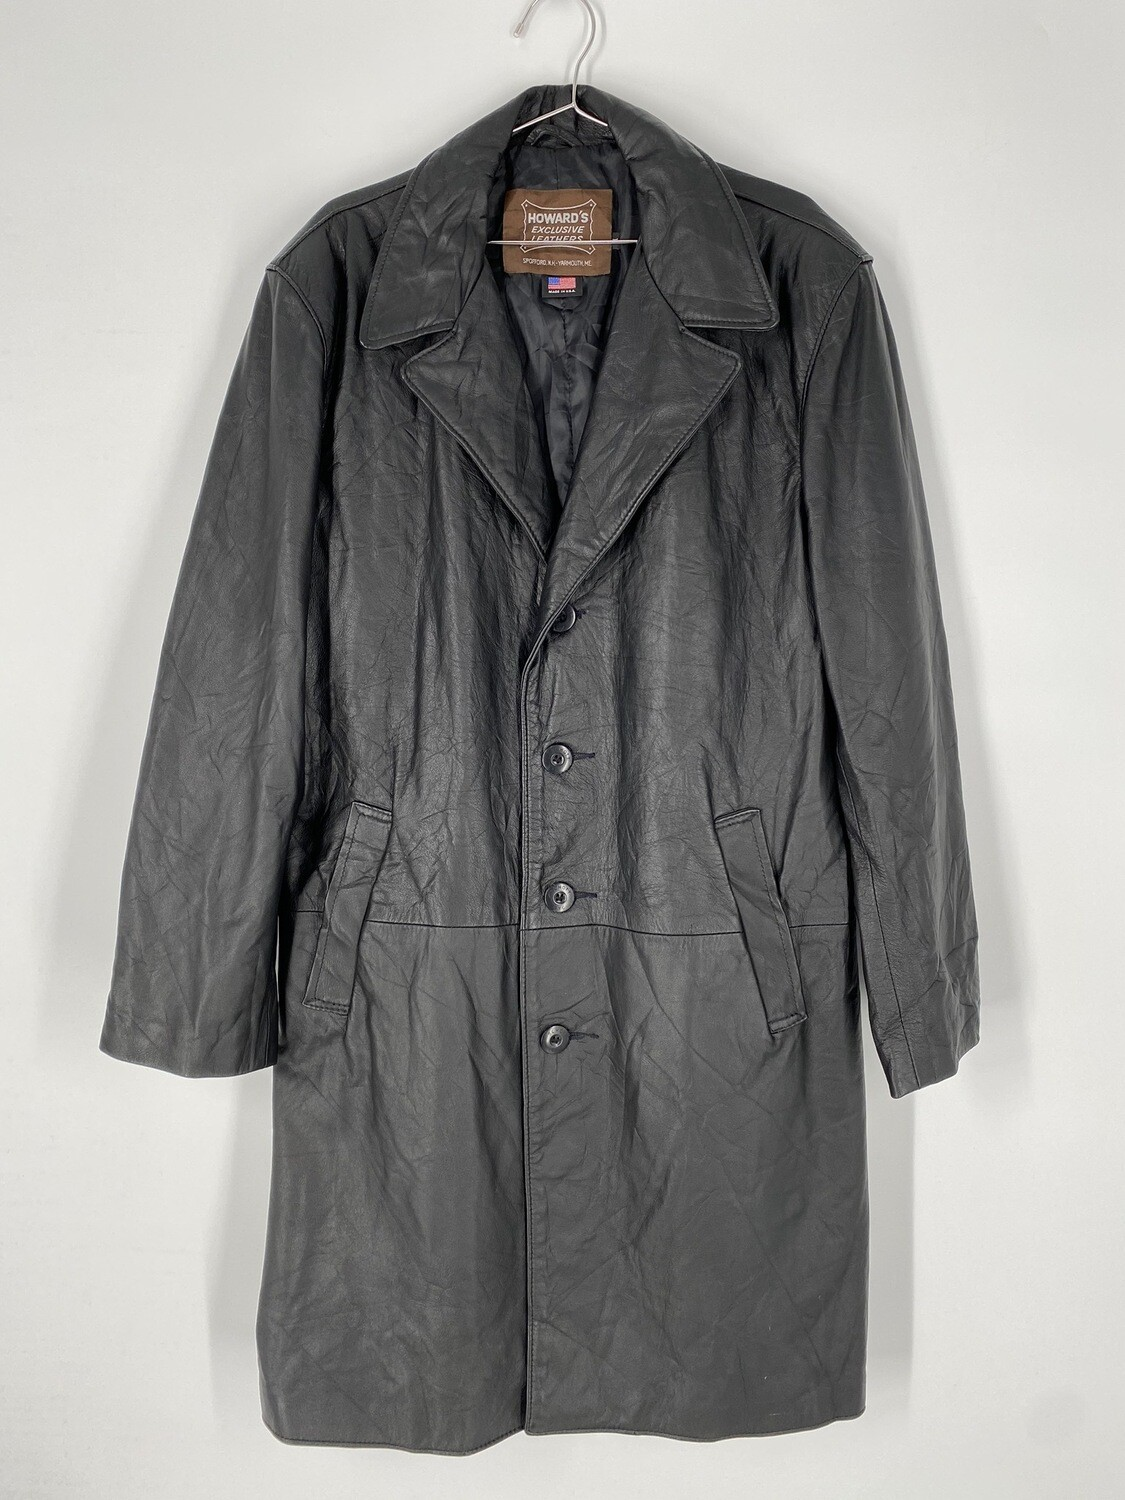 Howard's Exclusive Leathers Black Trench Coat Size M